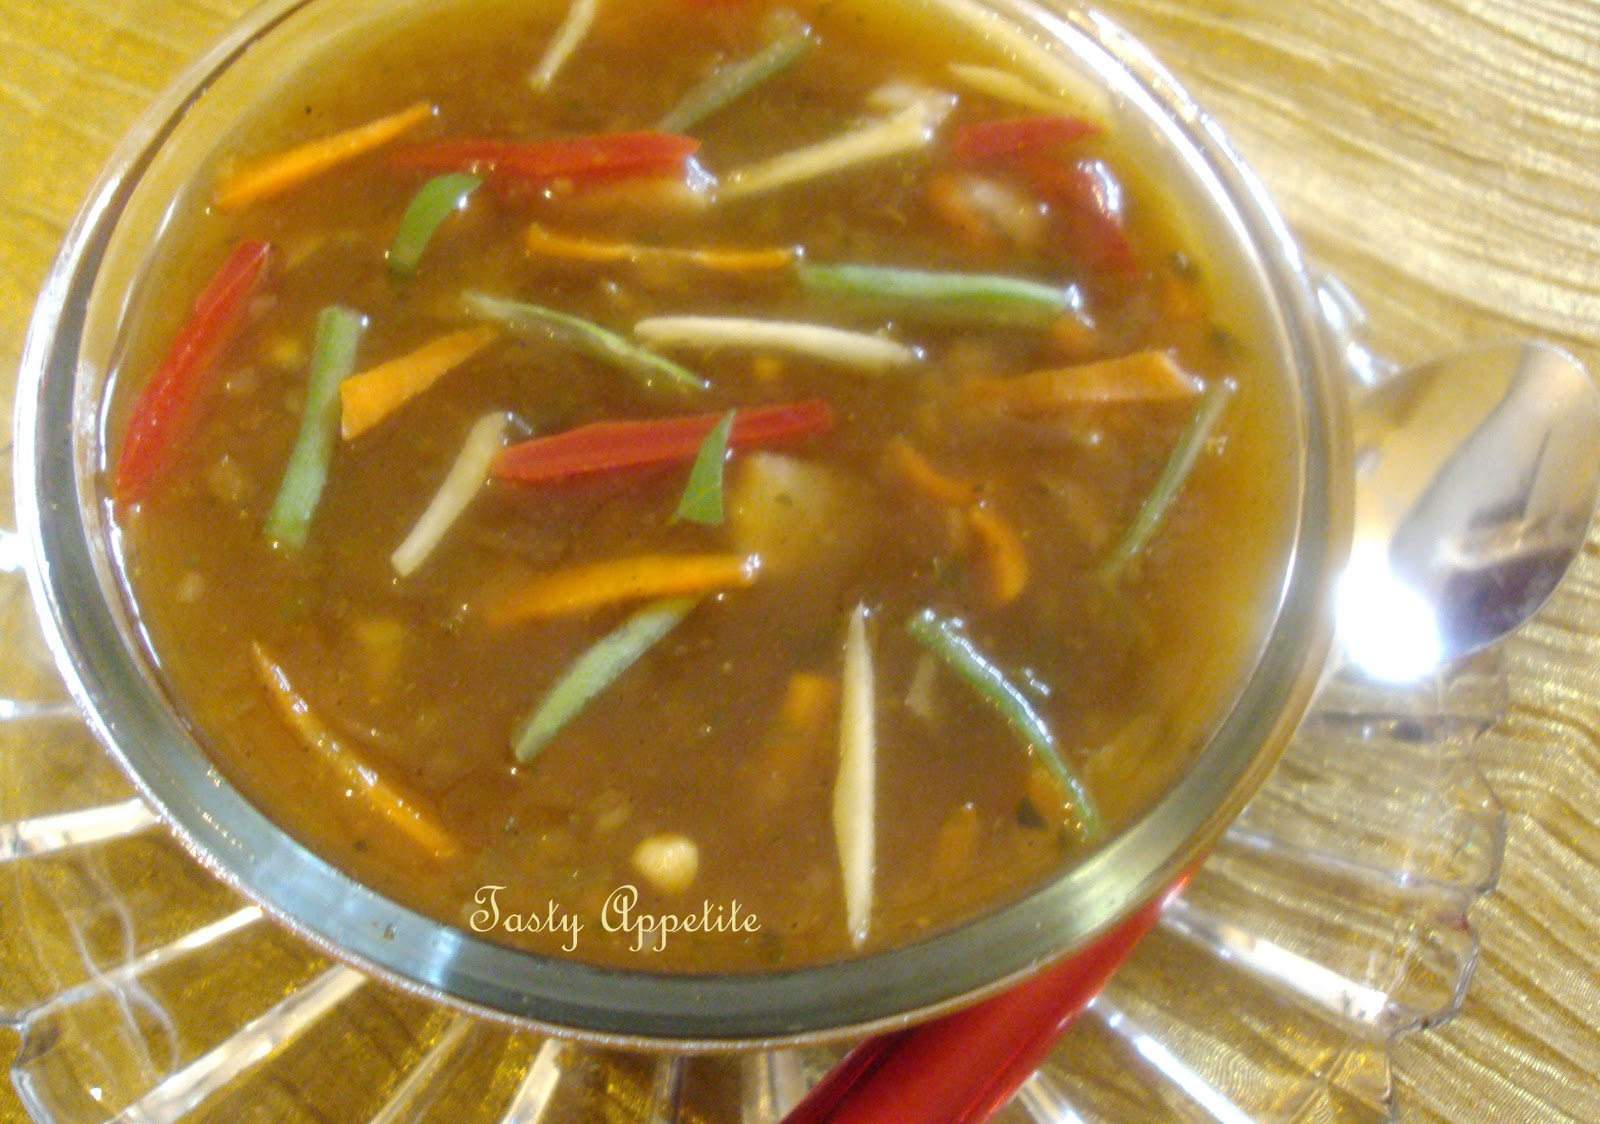 Yummy and healthy home made Hot & Sour Veg Soup ready to enjoy.